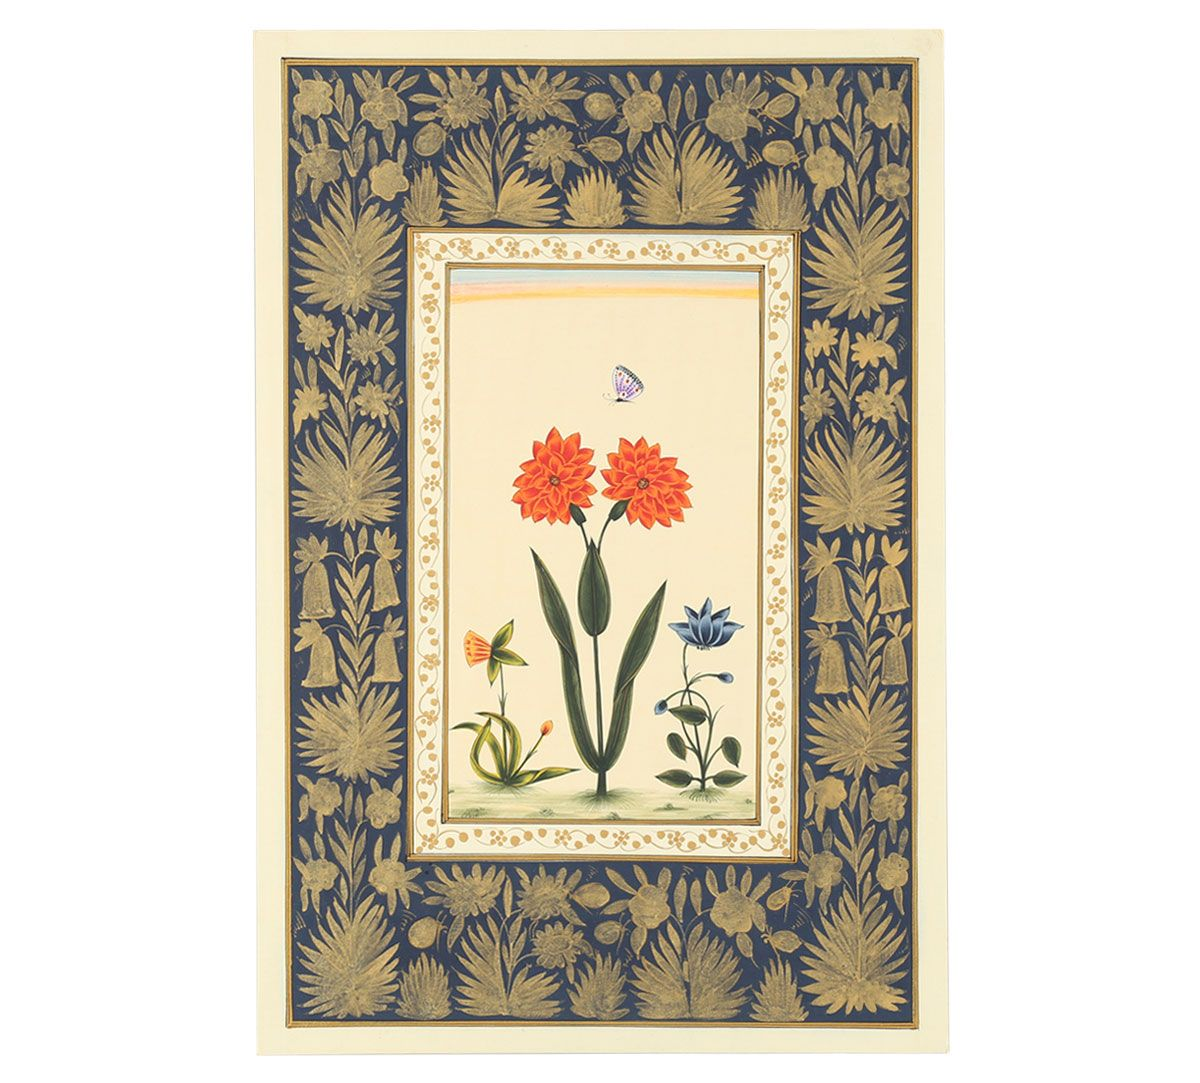 India Circus Red Dahila Butterfly Handmade Poster